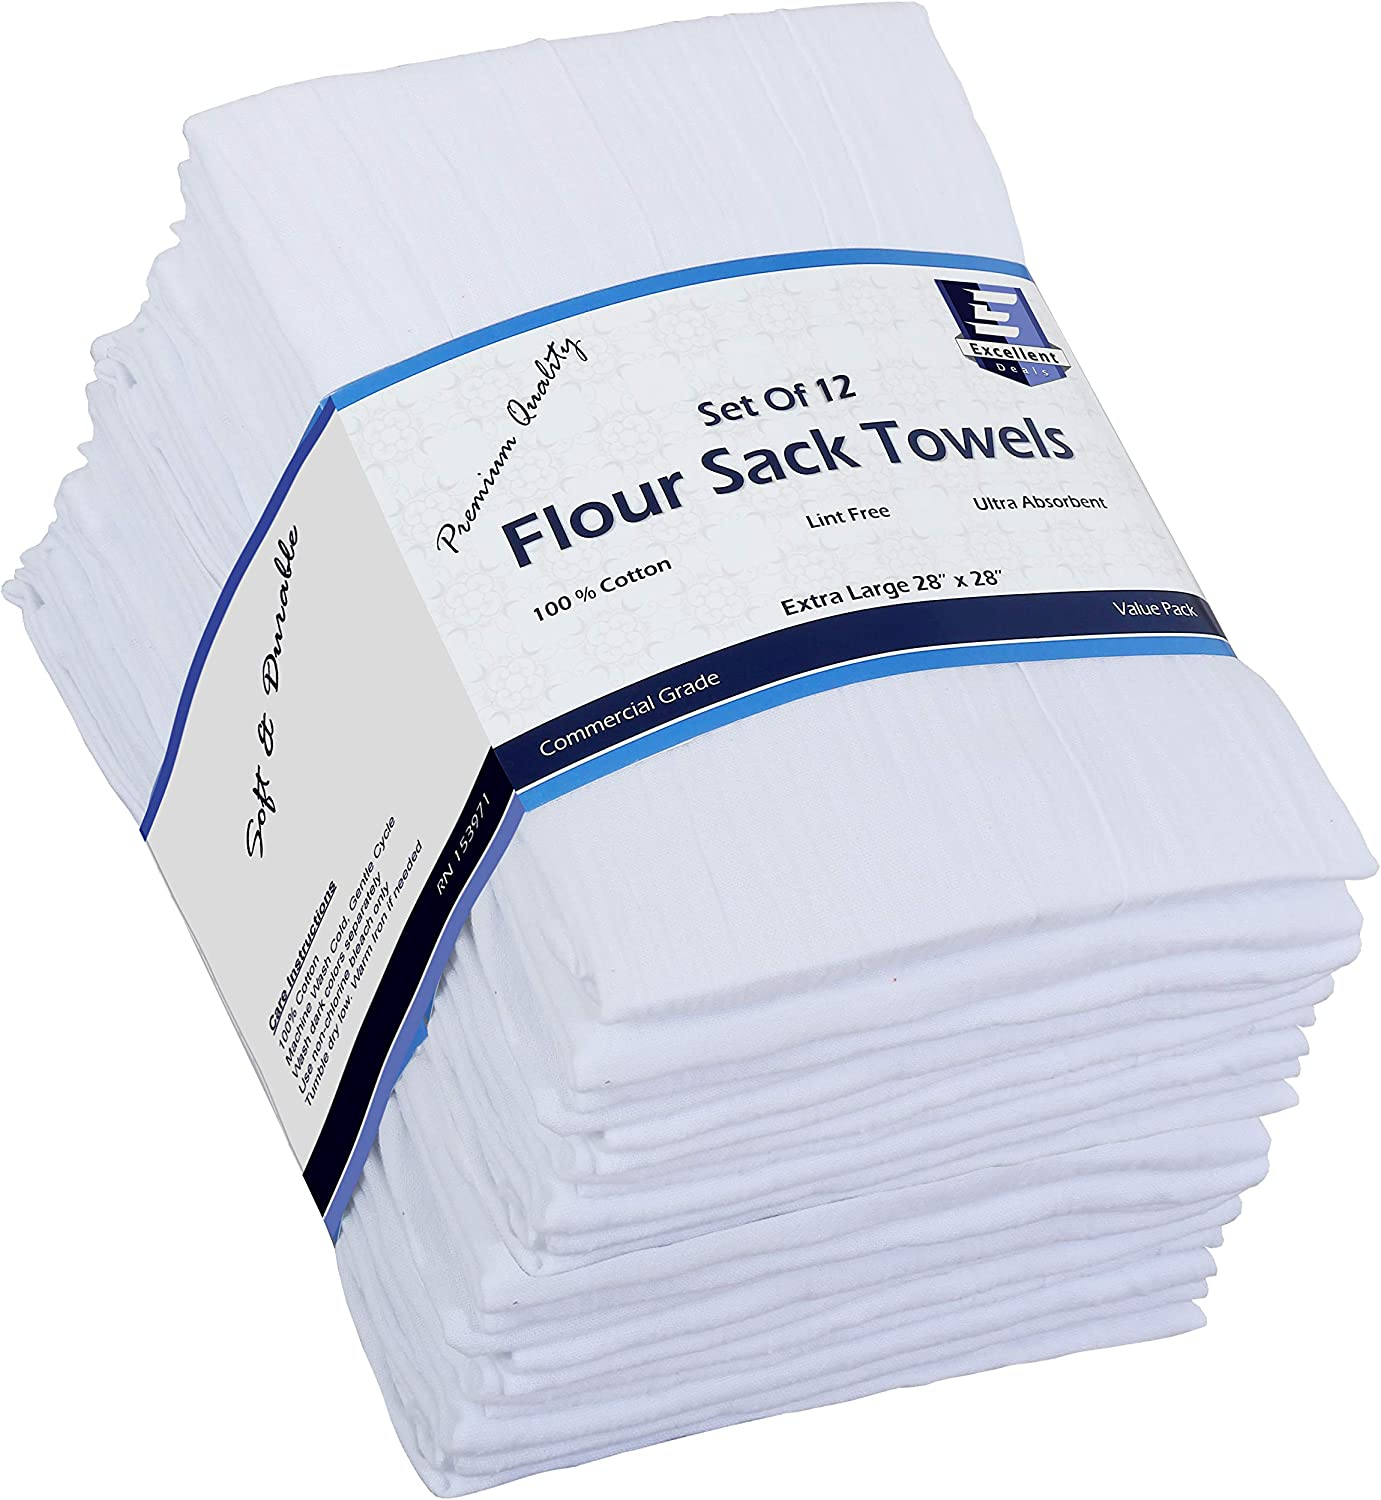 Flour Sack Kitchen Towels (White,12 Pack) 100% Cotton,28x28 Inch Cloth Napkin, Bread wrapper, Cheesecloth, Multi Purpose Kitchen Dish Towels,Bar Towels, Extremely Absorbent & Sturdy By Excellent Deals: Home & Kitchen